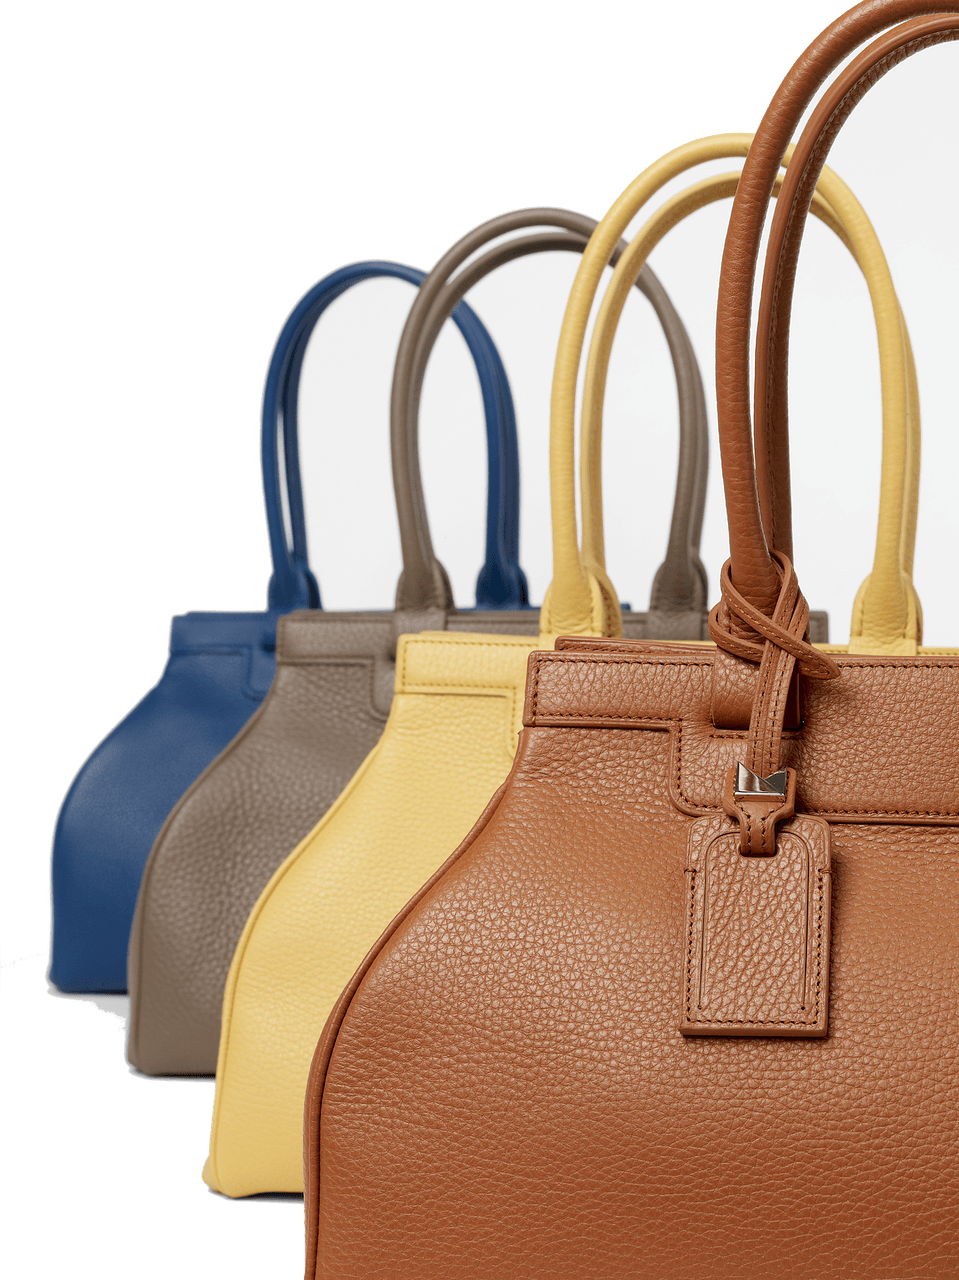 2 French Moynat